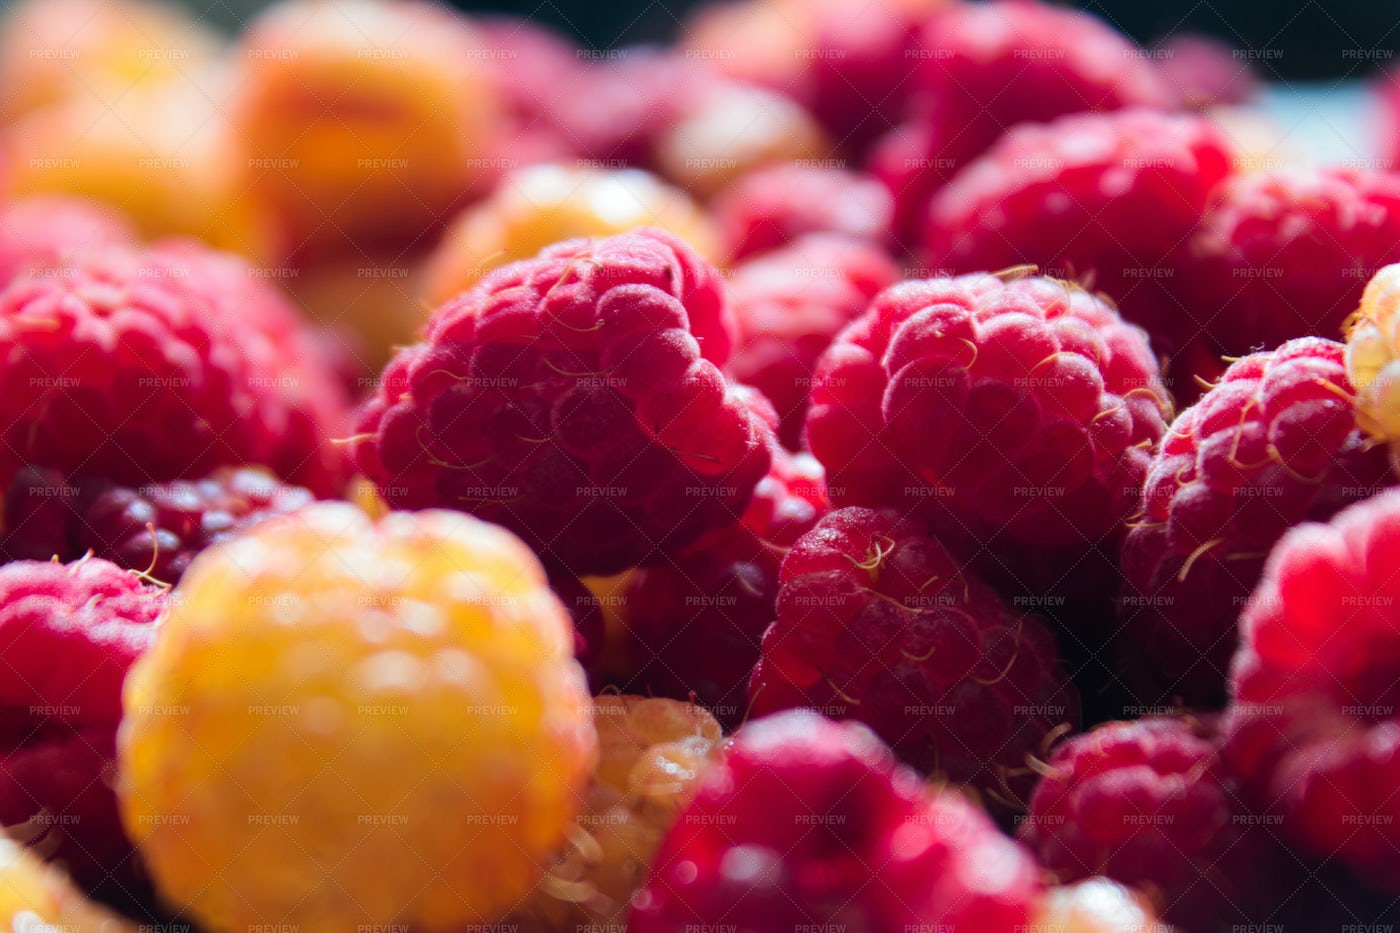 A Collection Of Raspberries: Stock Photos